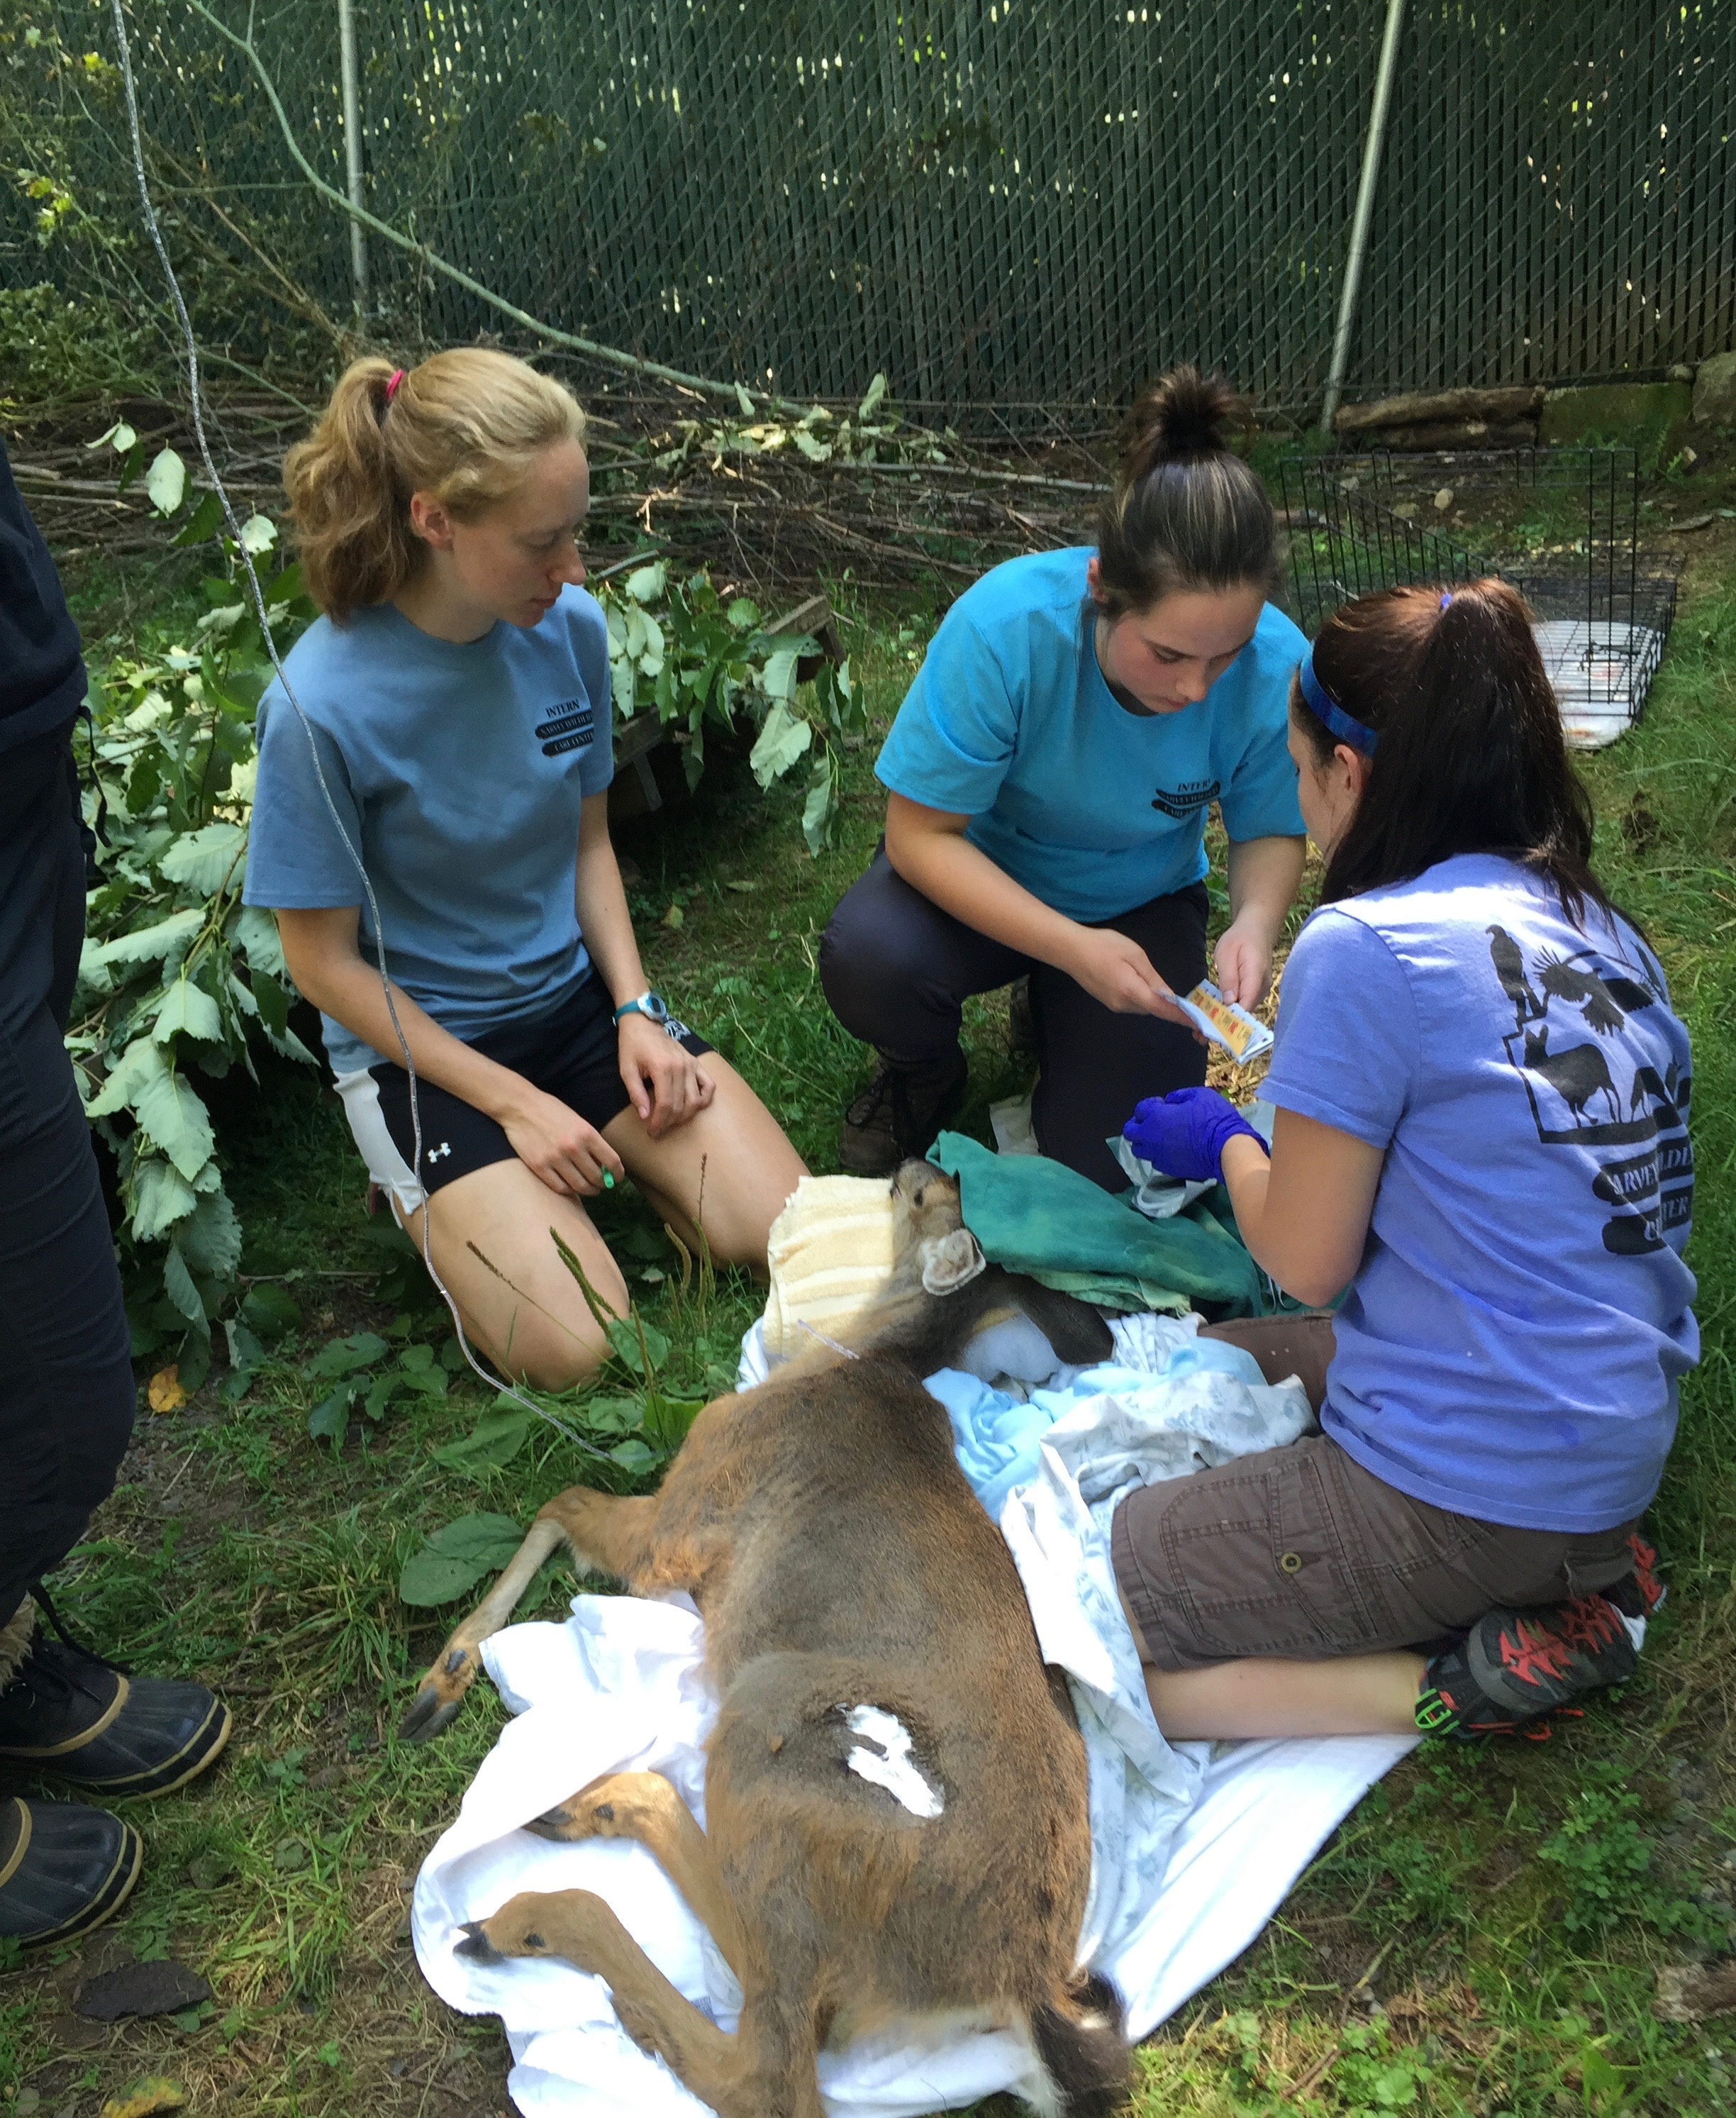 job description to assist licensed rehabilitators in the care and maintenance of sick injured and orphaned wildlife patients - Wildlife Biologist Job Description